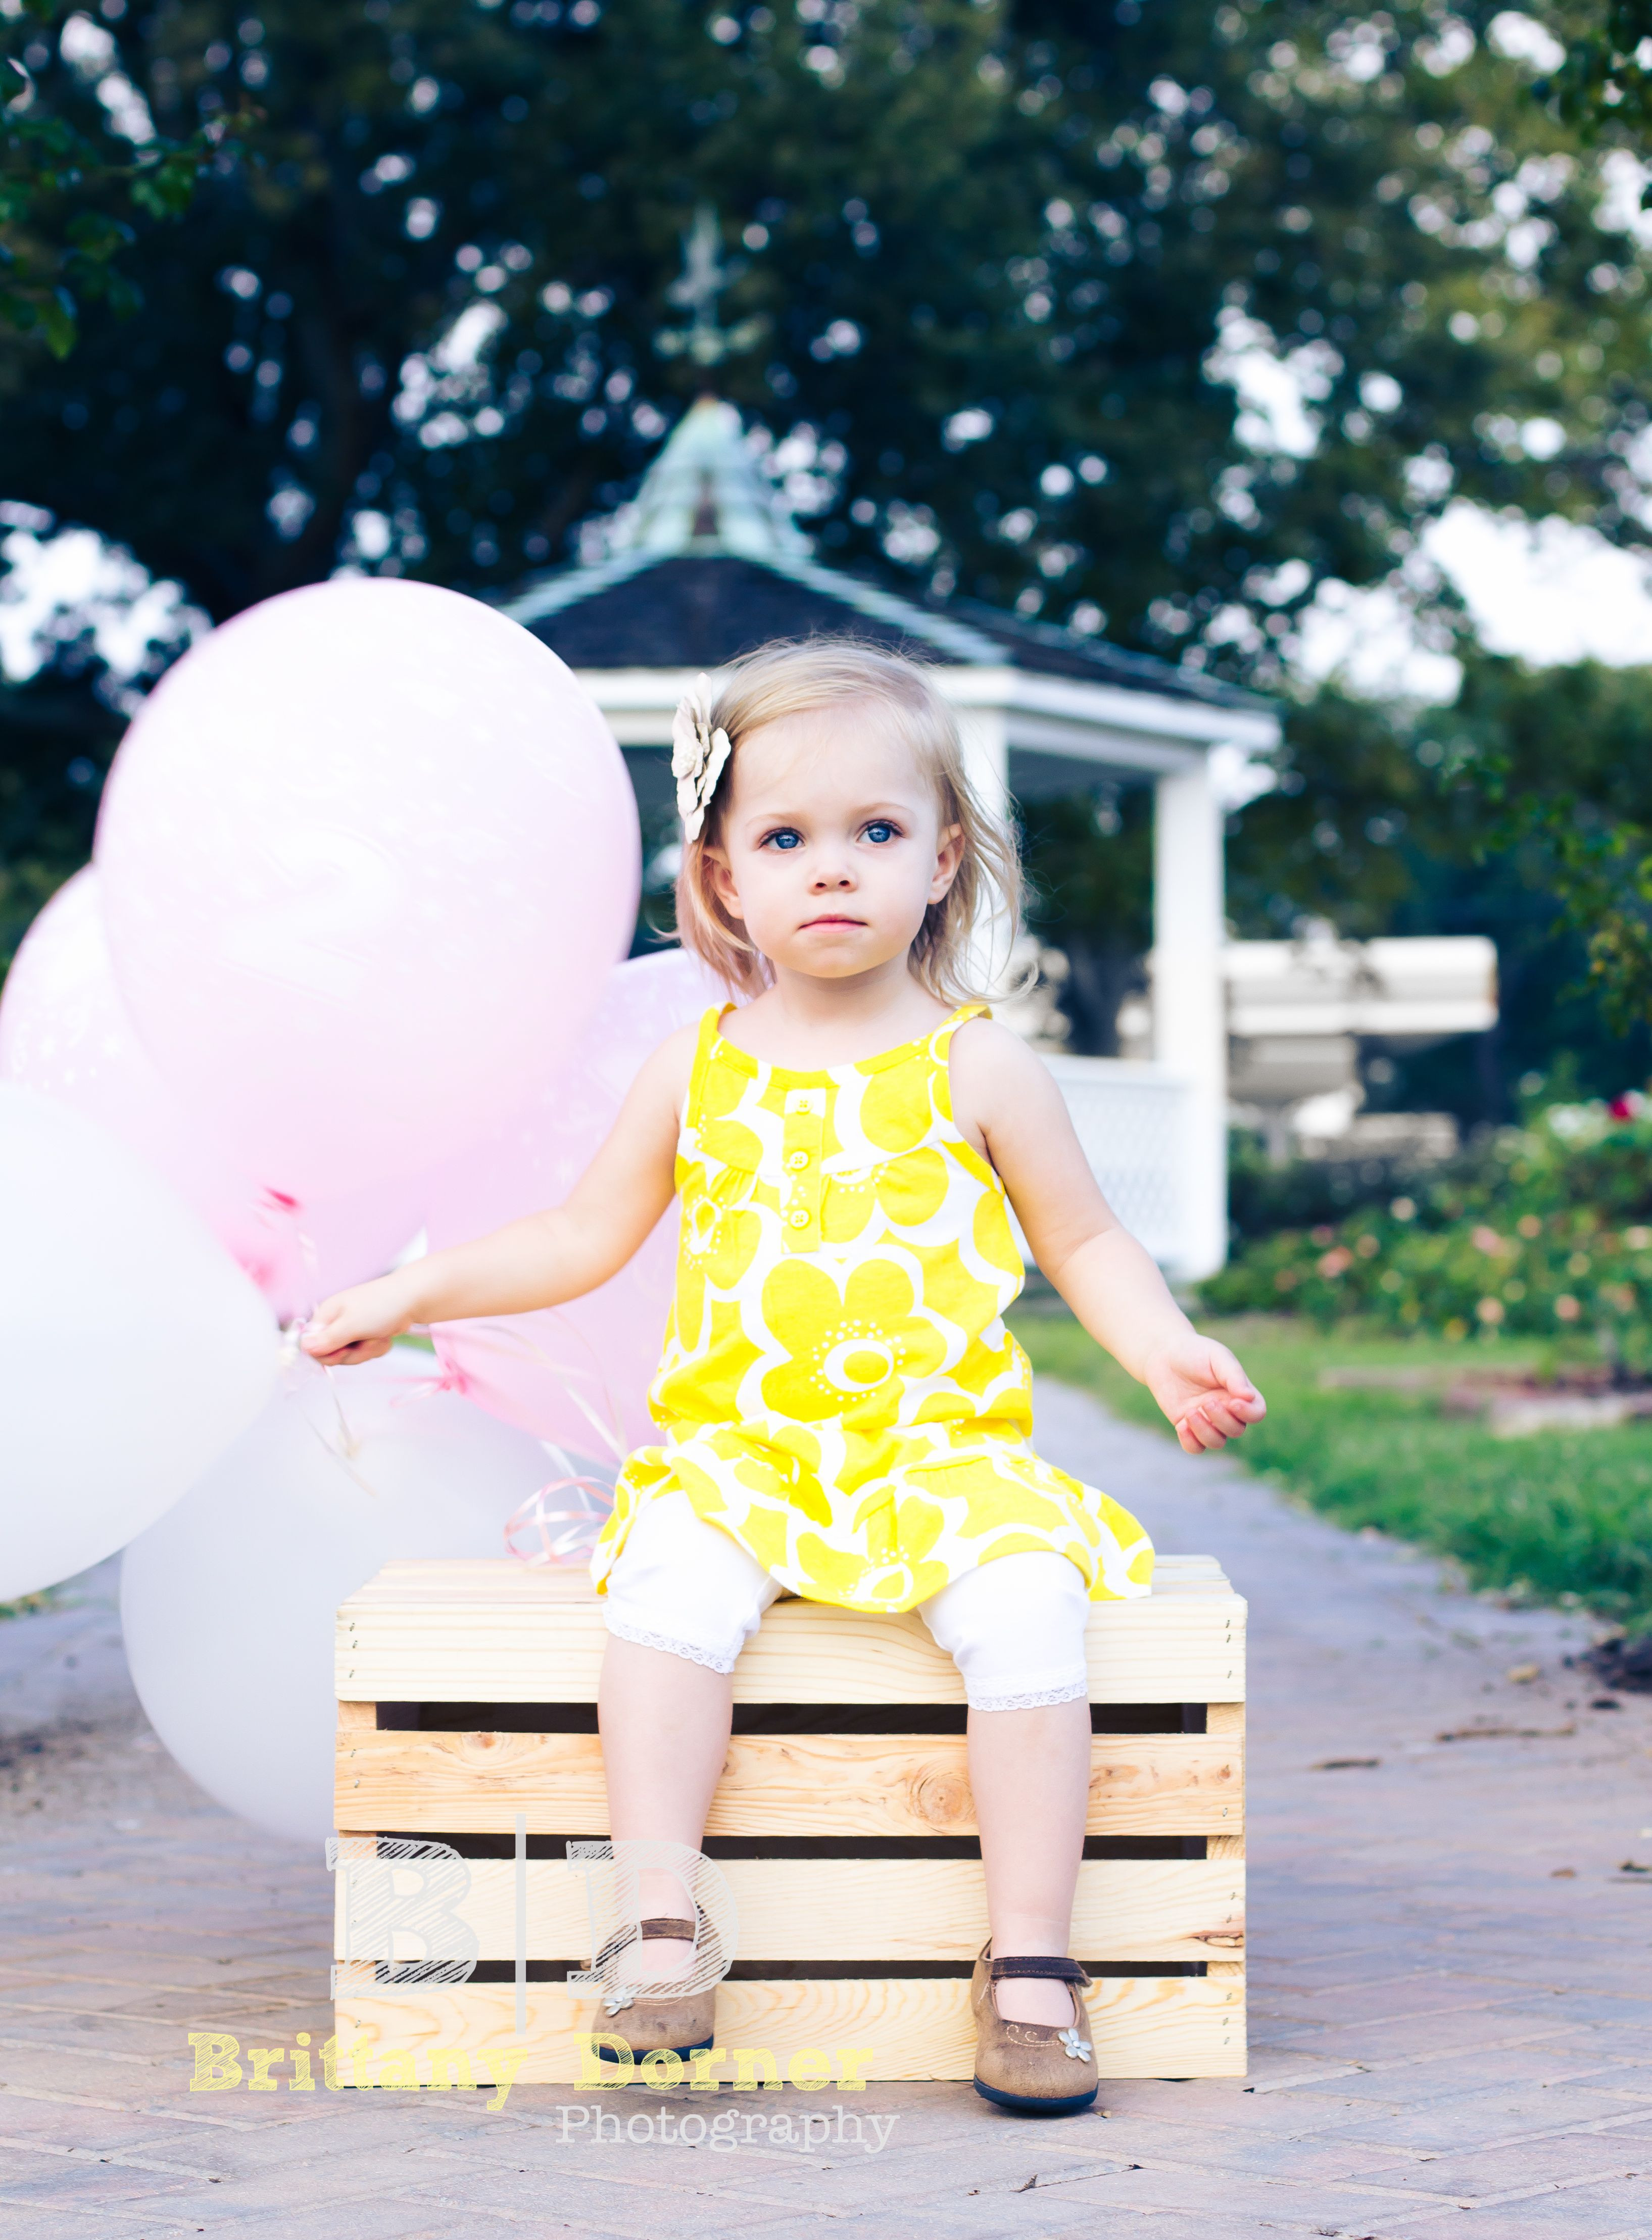 Birthday Gift Ideas For 2 Year Old Baby Girl  Cute Birthday shoot ideas Balloons Two year old